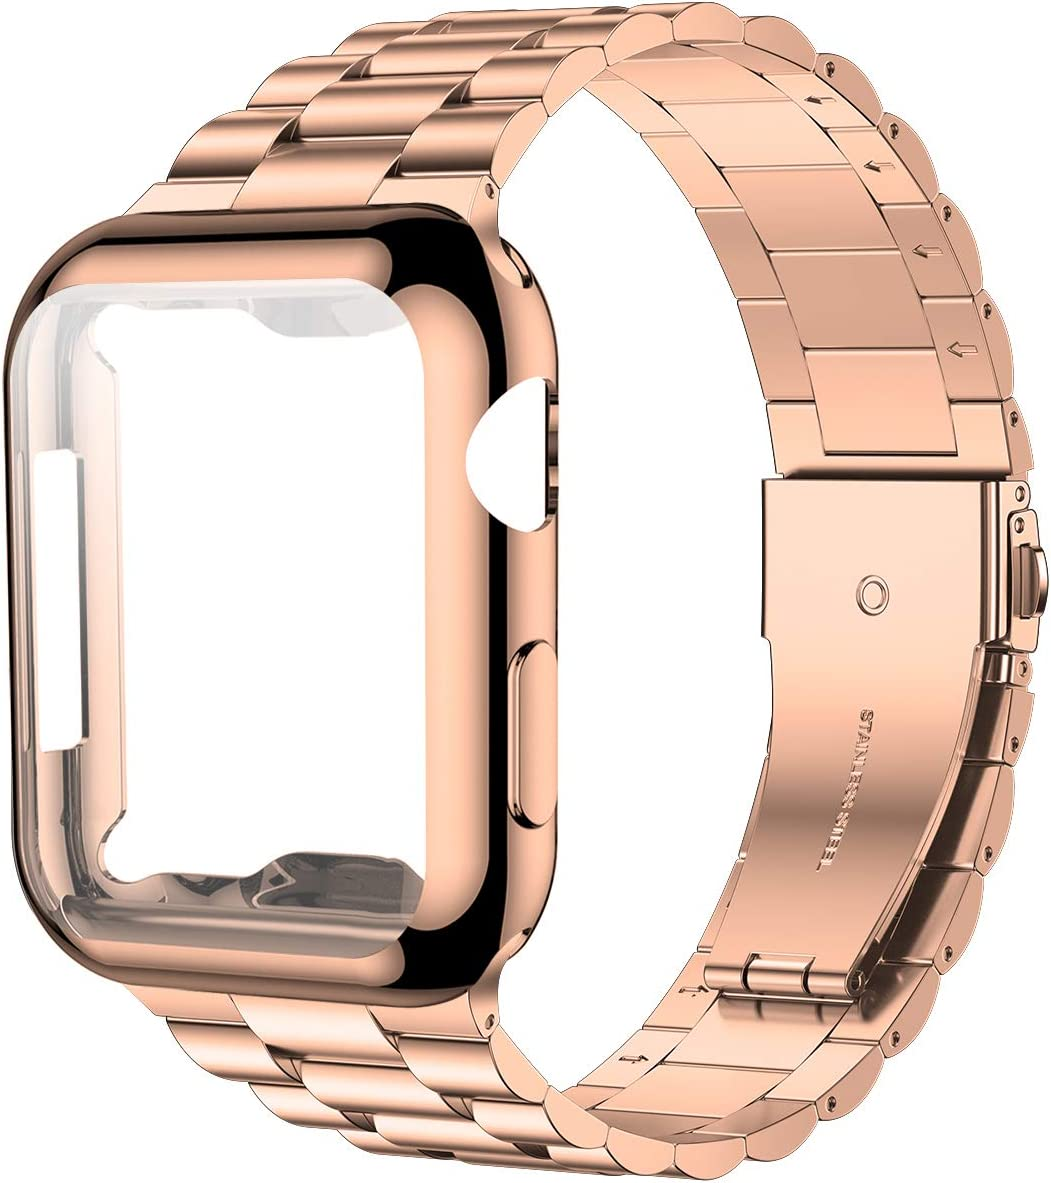 iiteeology Compatible with Apple Watch Band 44mm SE/Series 6 5 4, Upgraded Stainless Steel Link Replacement Band with iWatch Screen Protector Case Rose Gold